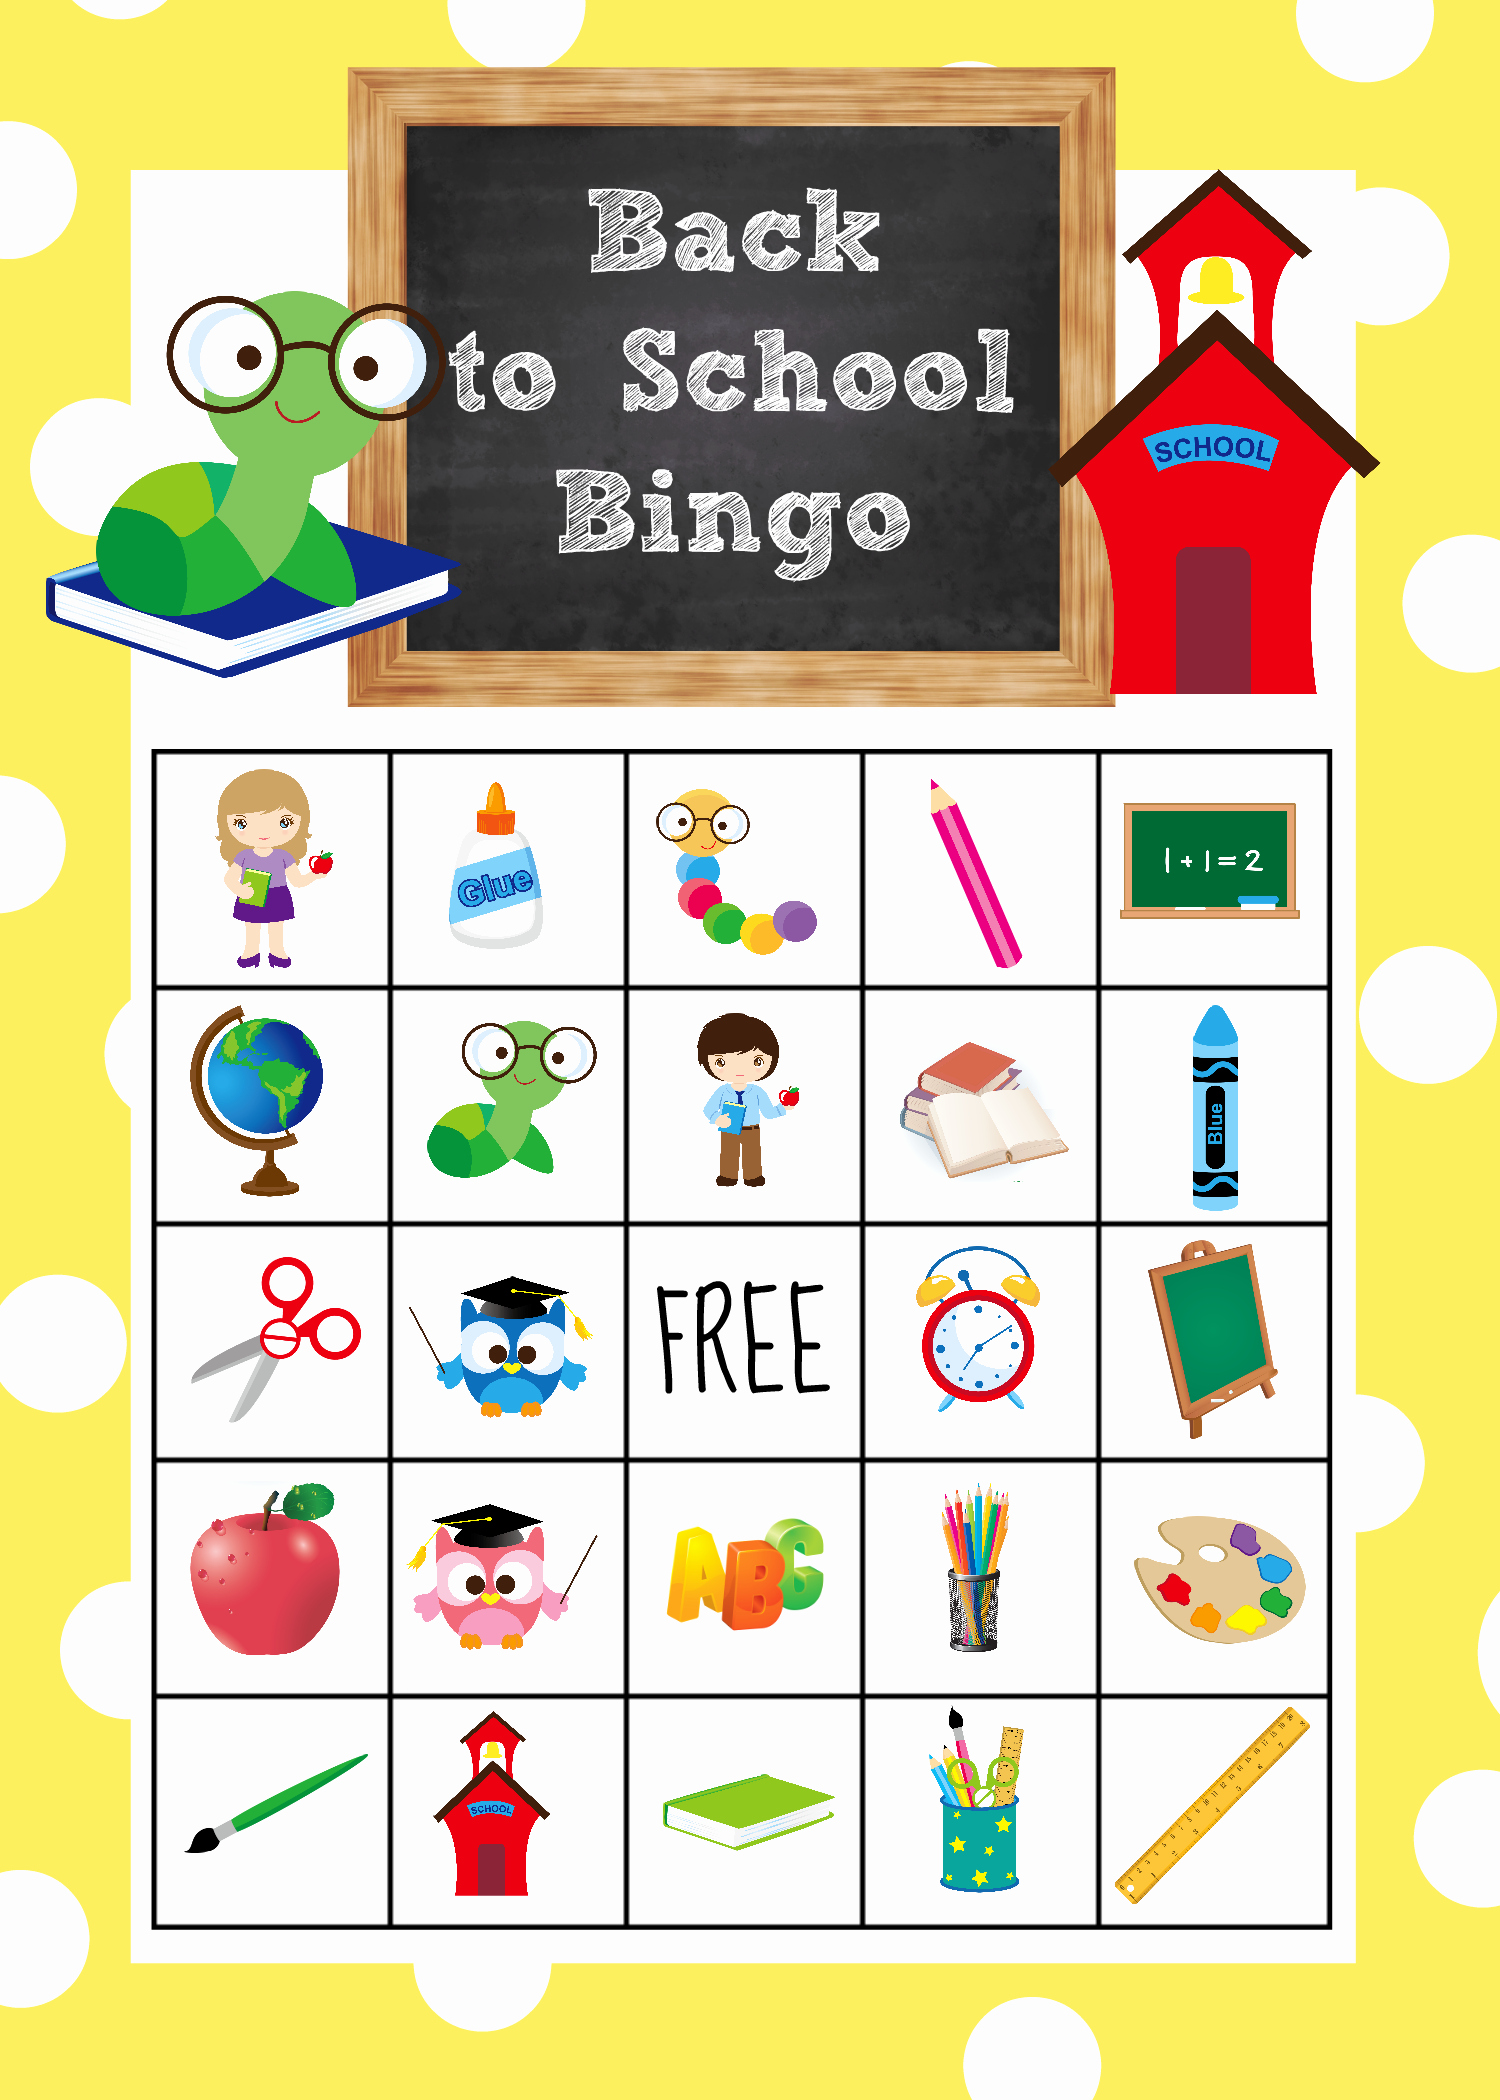 Free Printable Bingo Boards Awesome Back to School Bingo Game to Print & Play Crazy Little